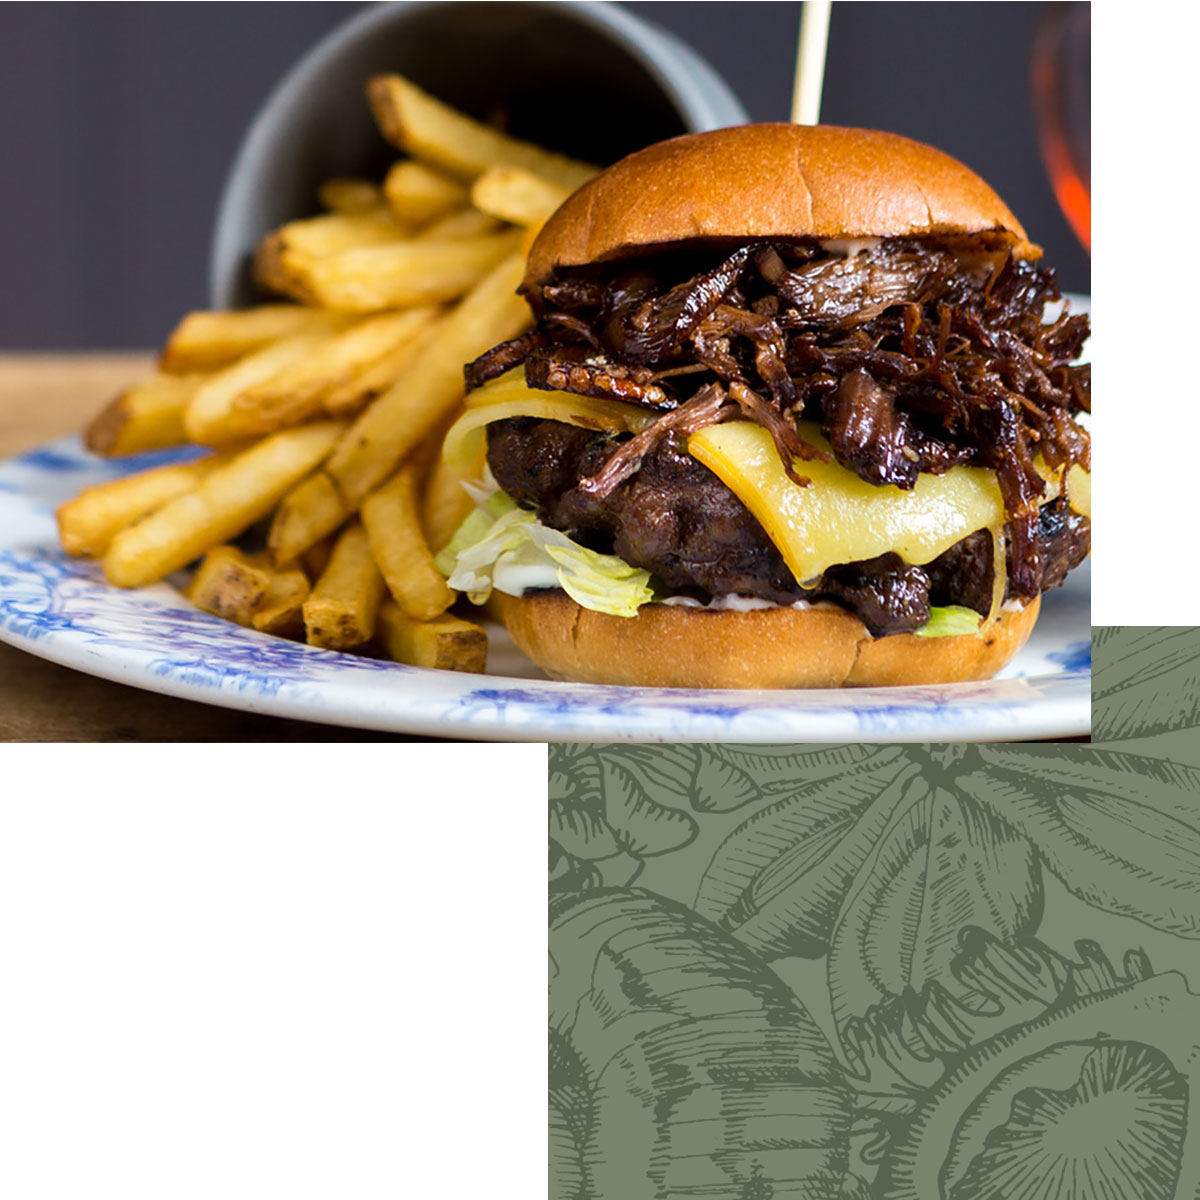 Chef & Brewer - Chef's Signature Barbecue Beef Burger